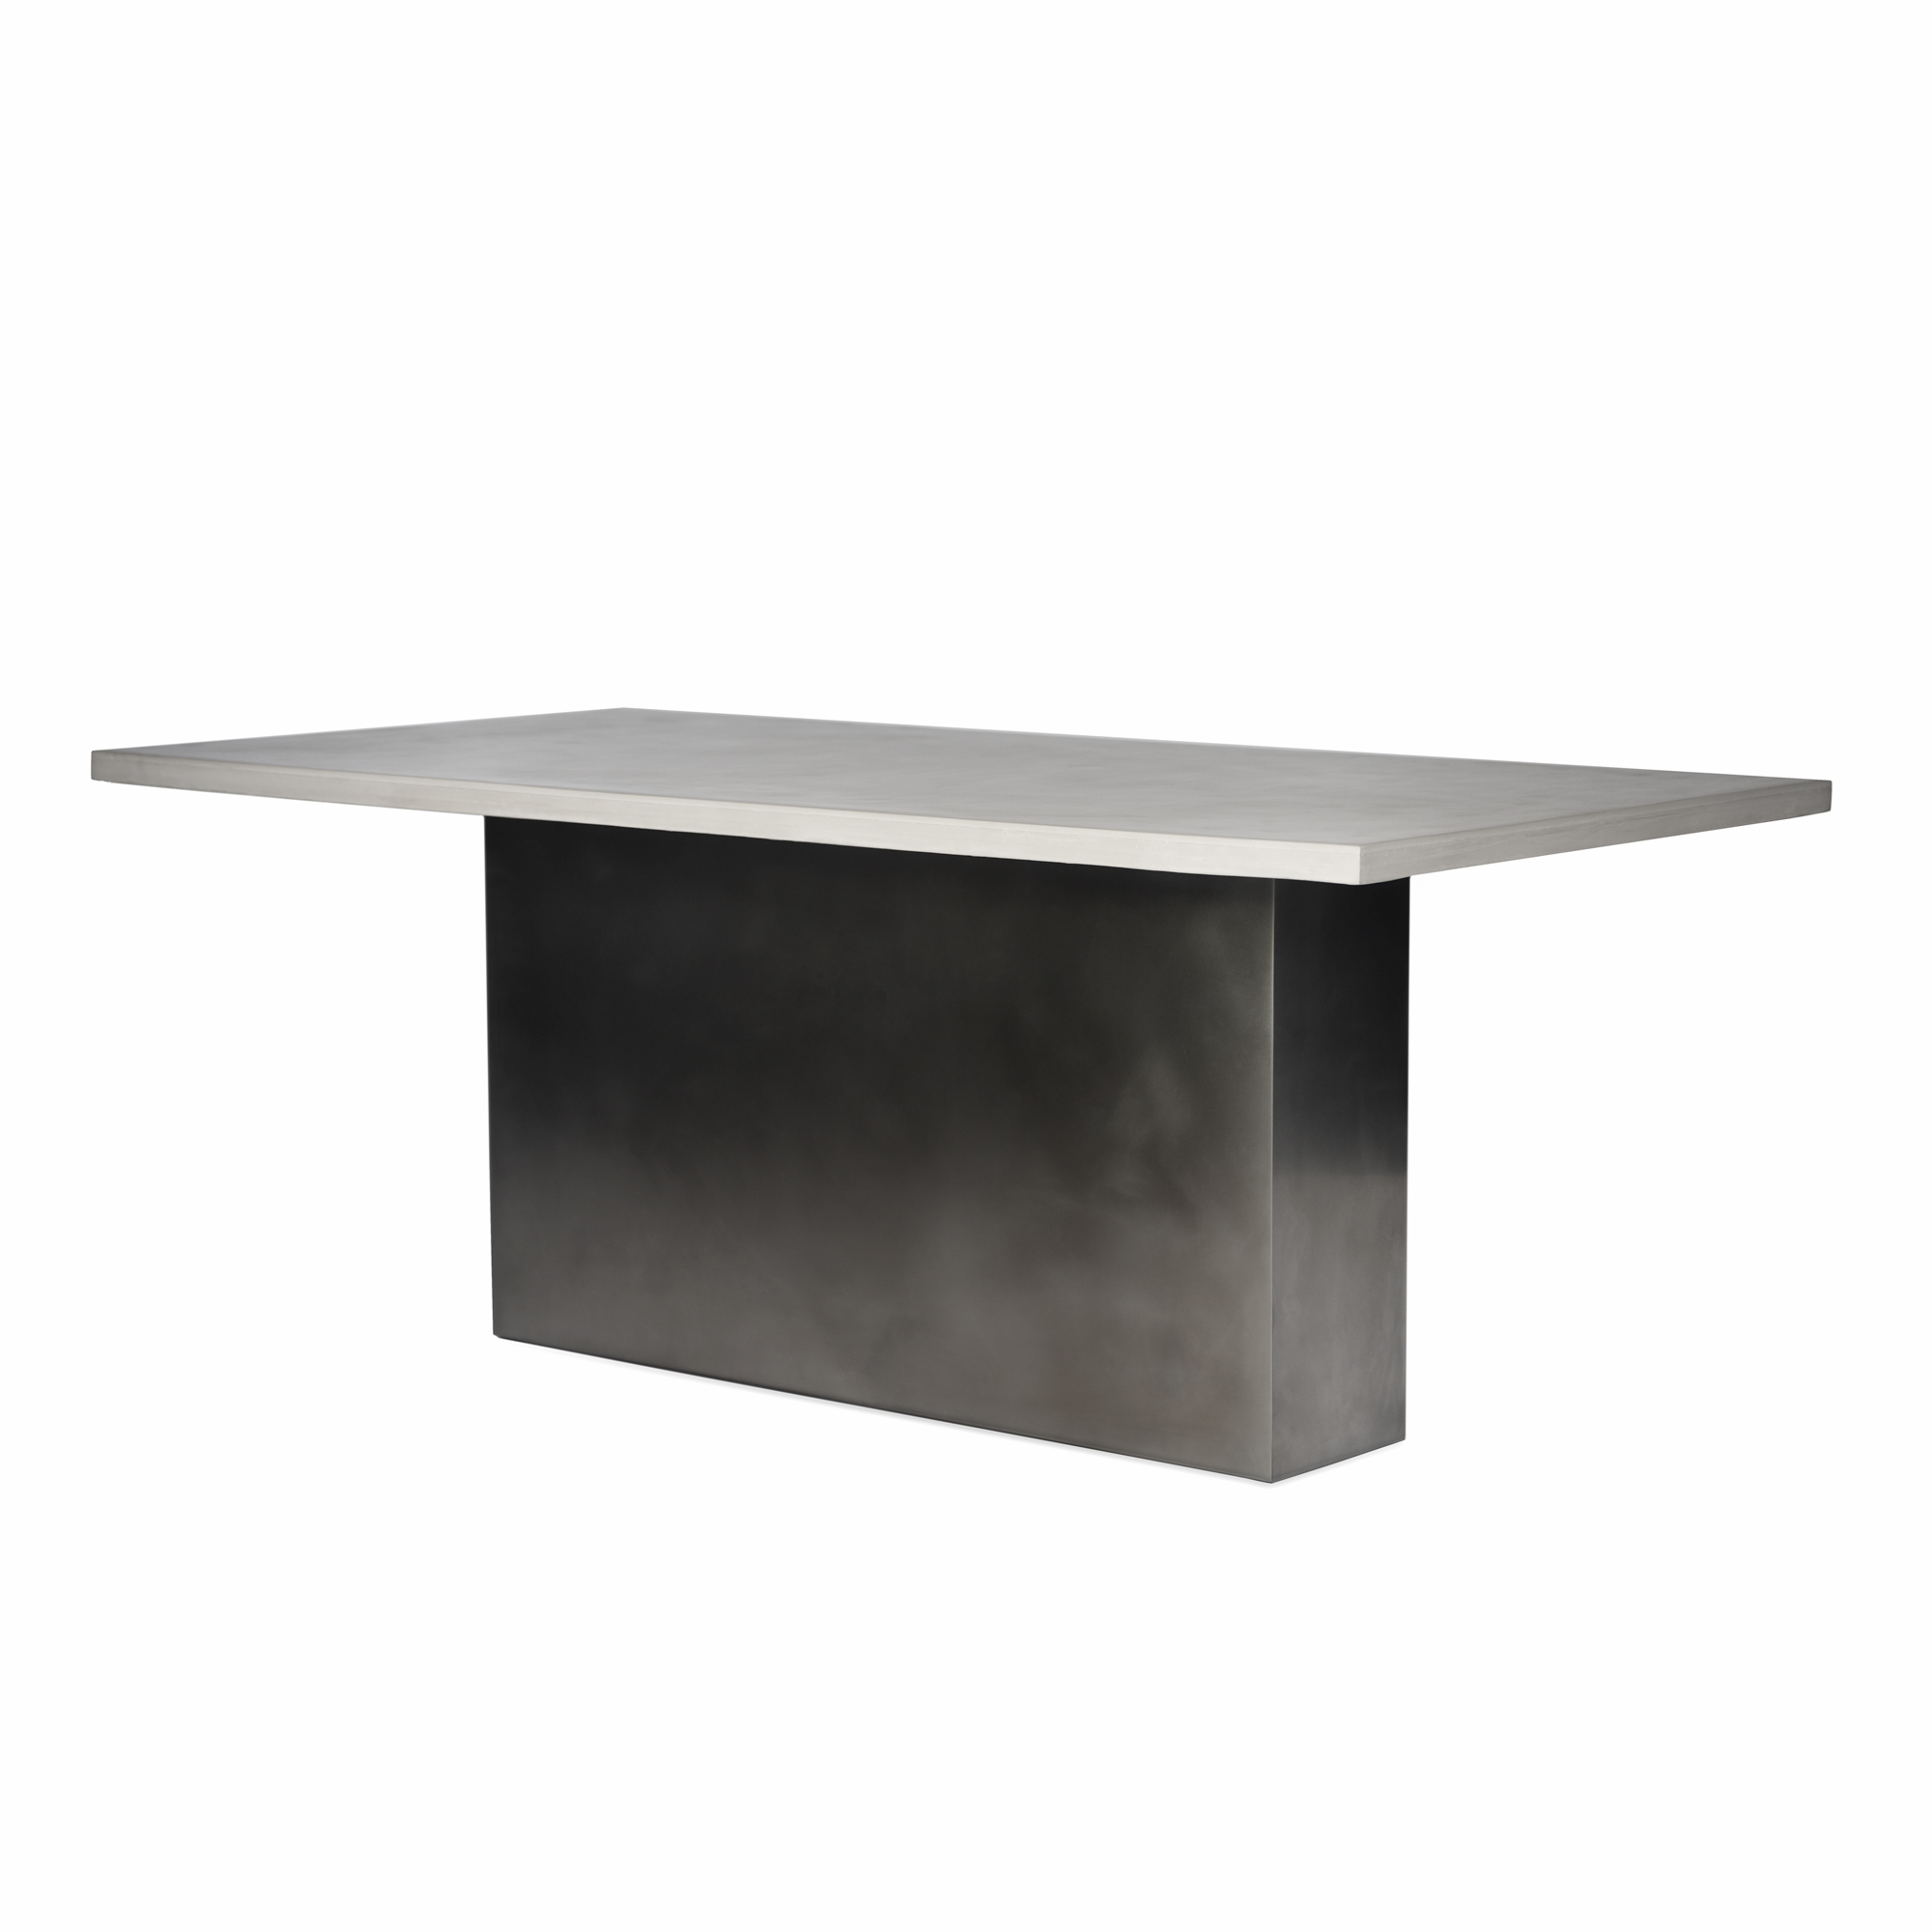 Pedestal Base Cladded in 16-Gauge Satin Rubbed Stainless Steel With Custom Lightly Pigmented Cast Concrete/Gypsum Mixture Top. Made to order.